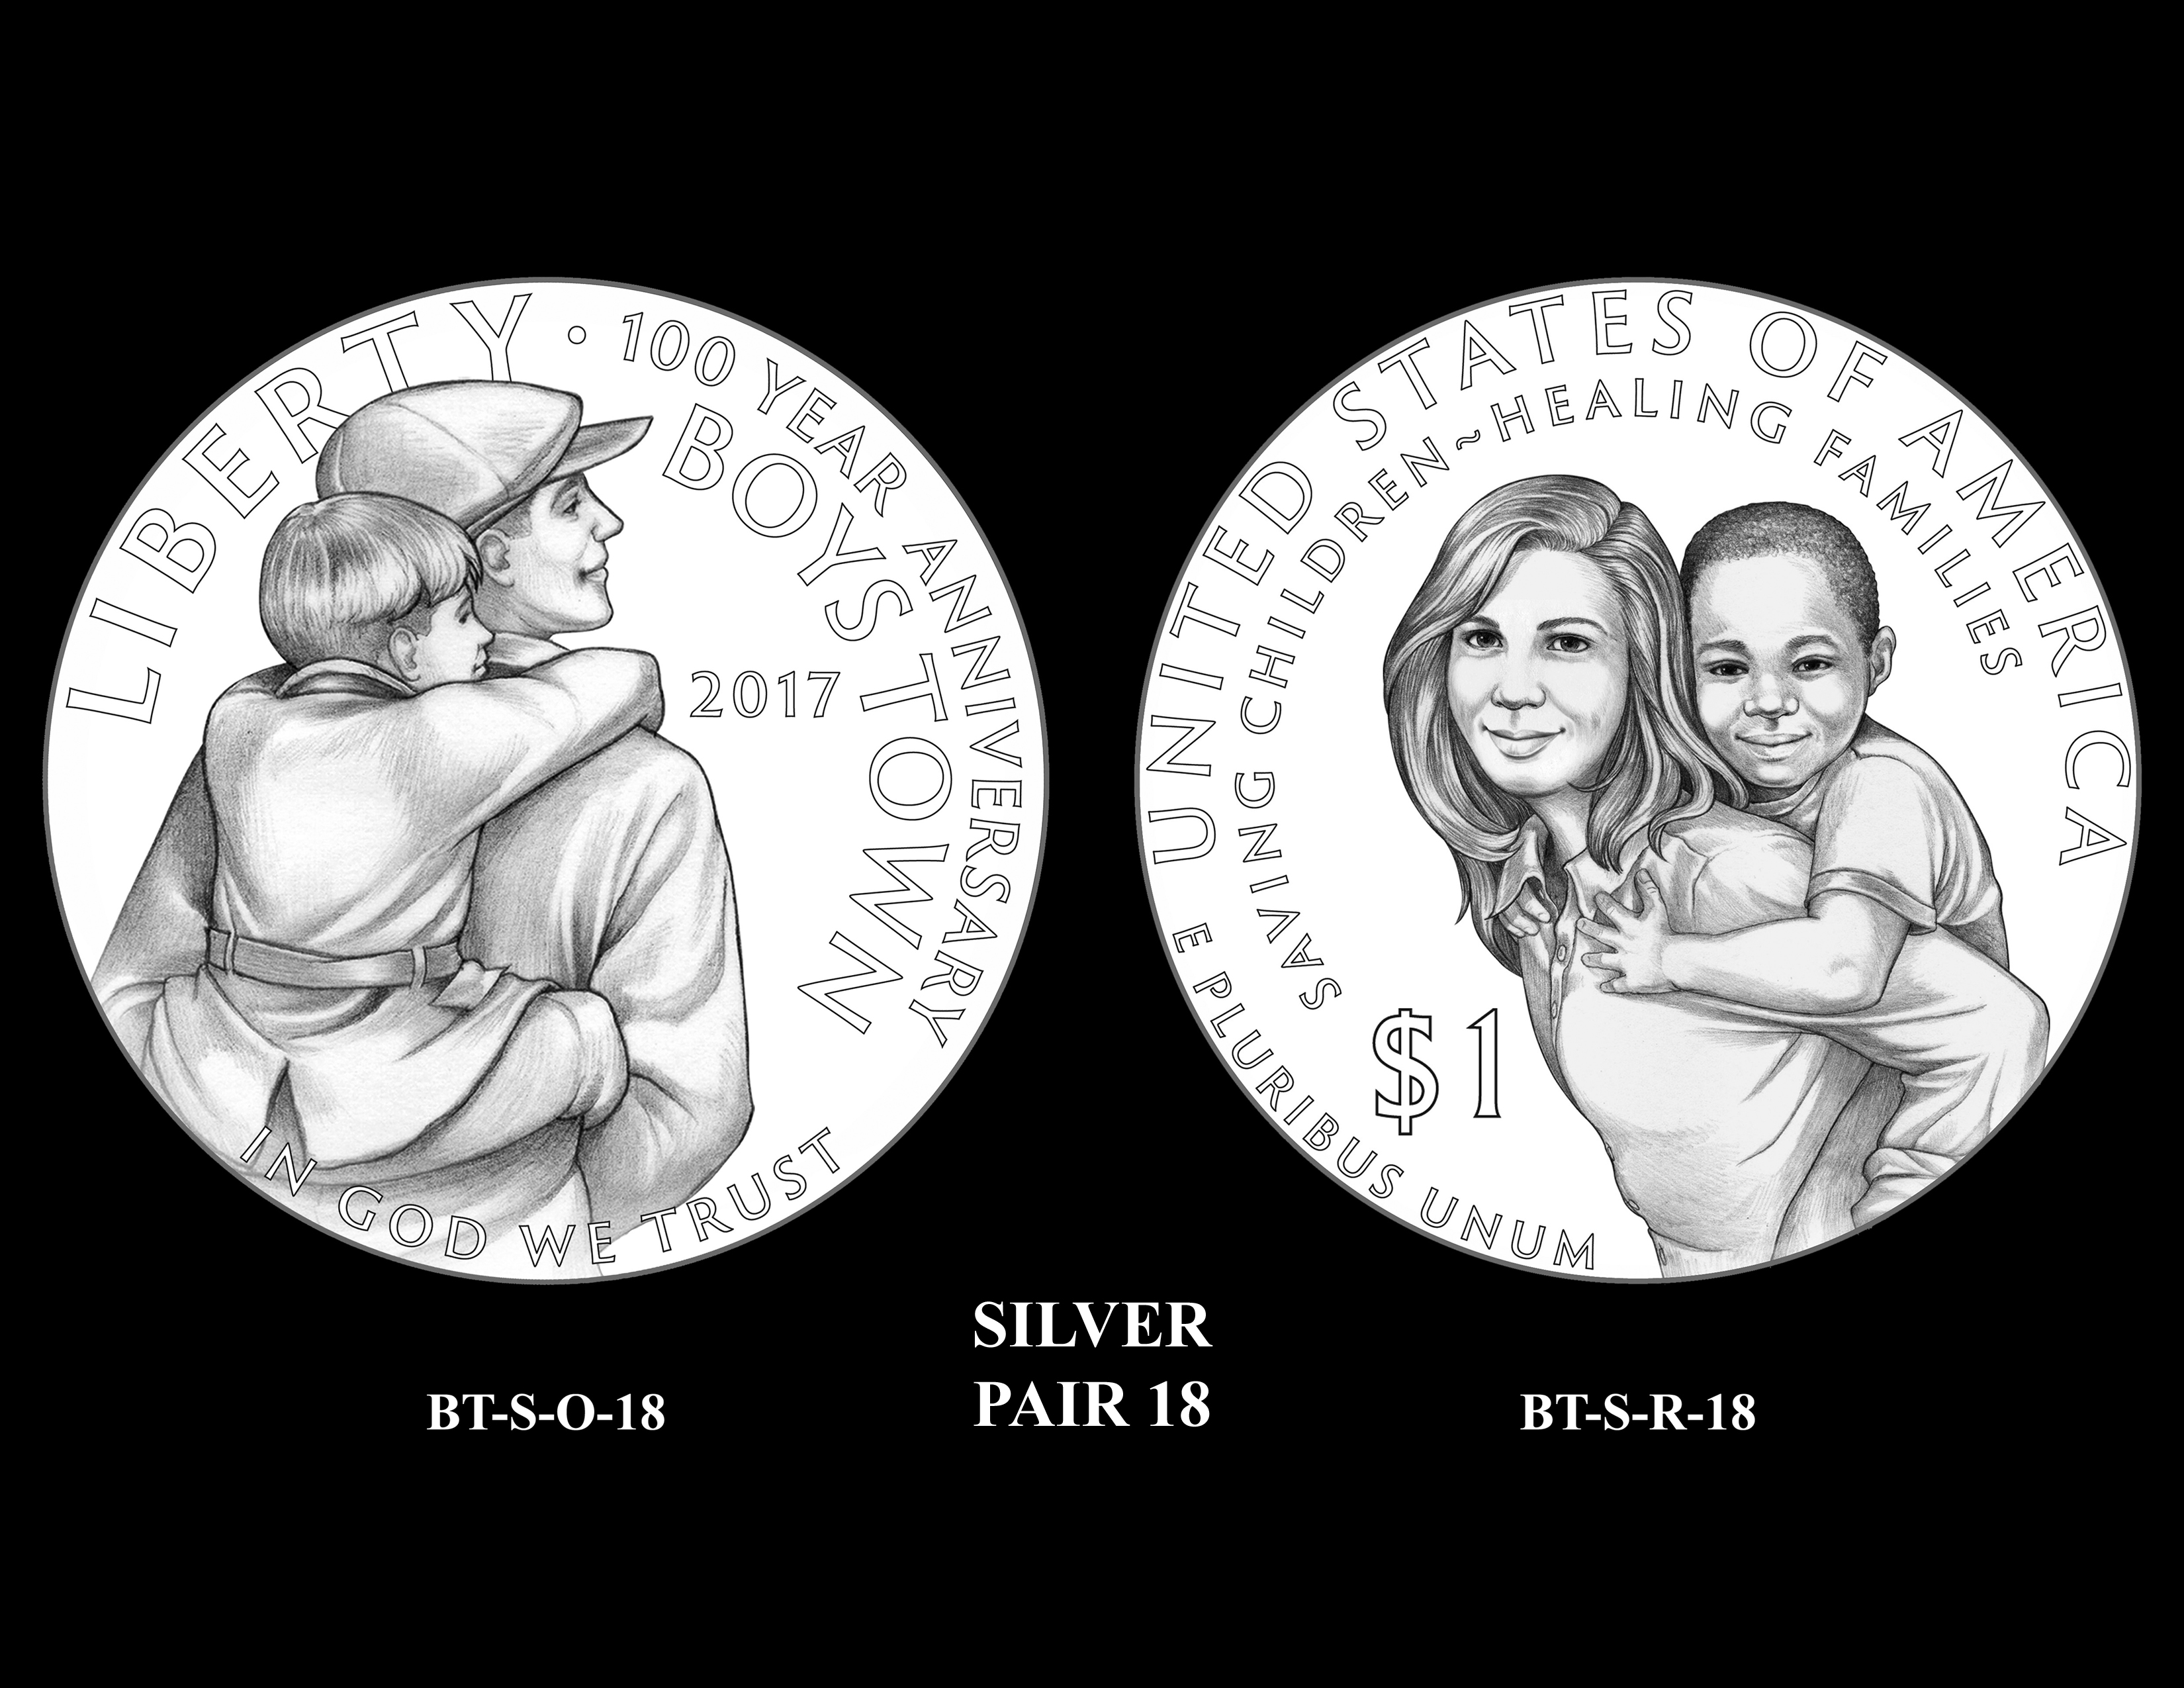 Silver-Pair-18 -- 2017 Boystown Centennial Commemorative Coin  Program